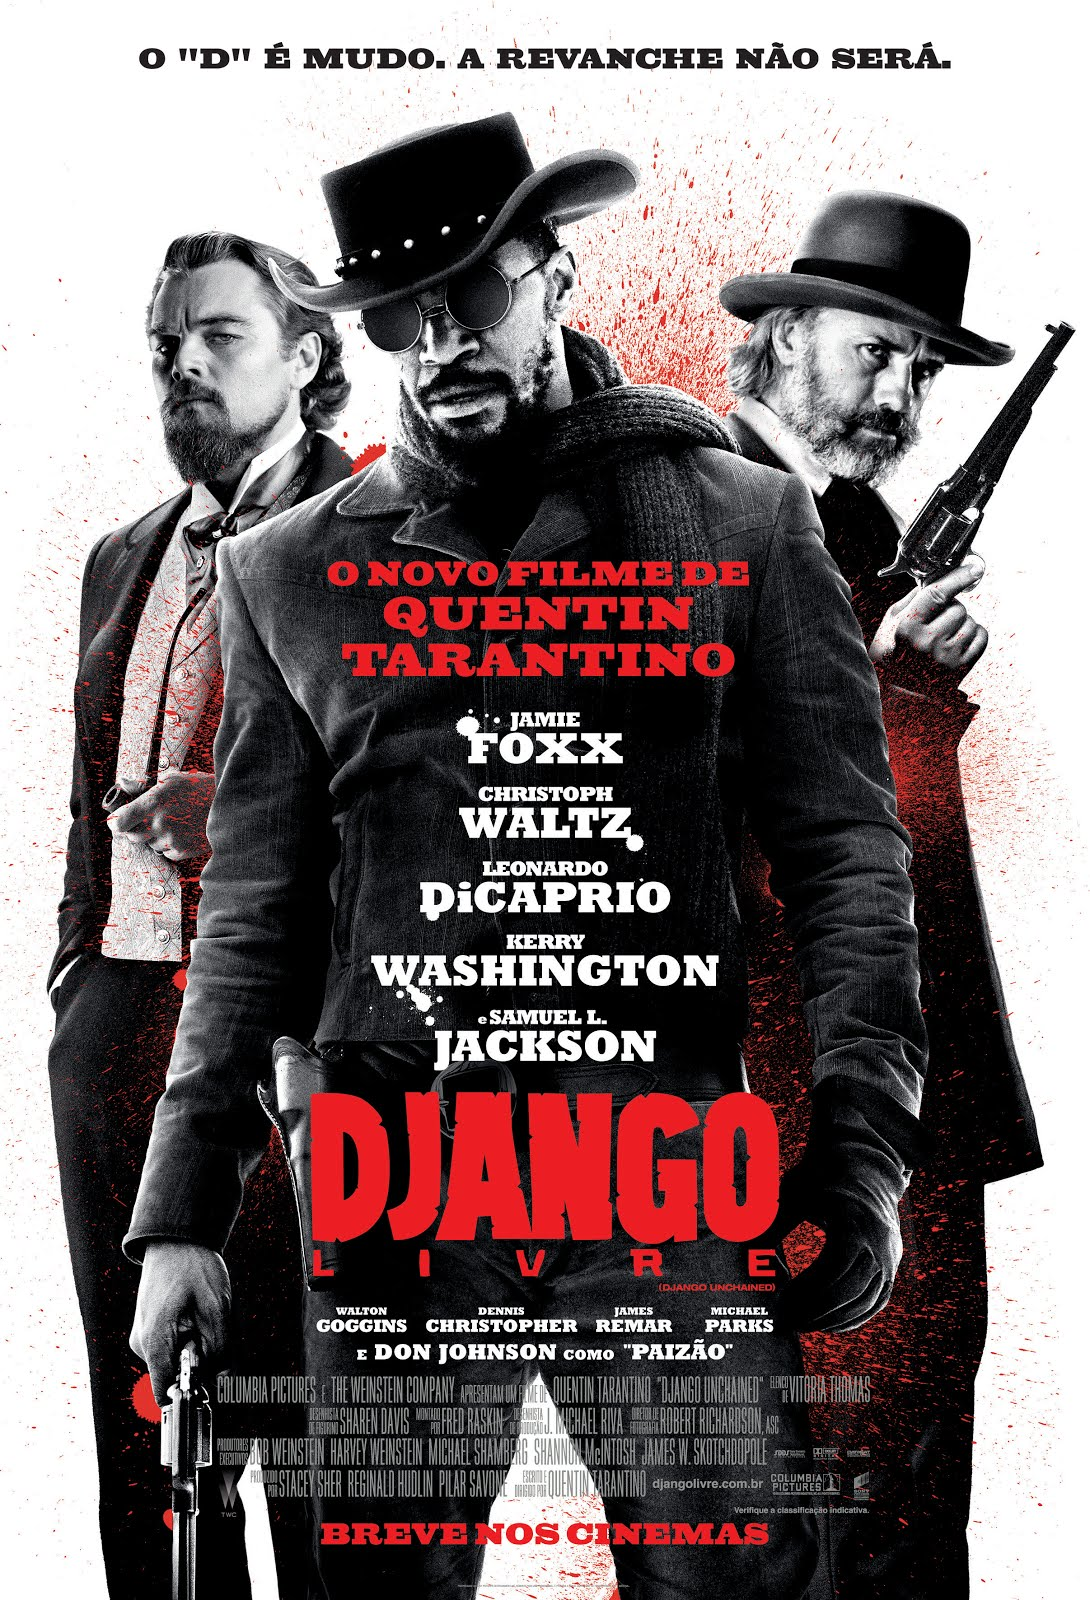 Download Django Livre [Dublado] BDRip RMVB